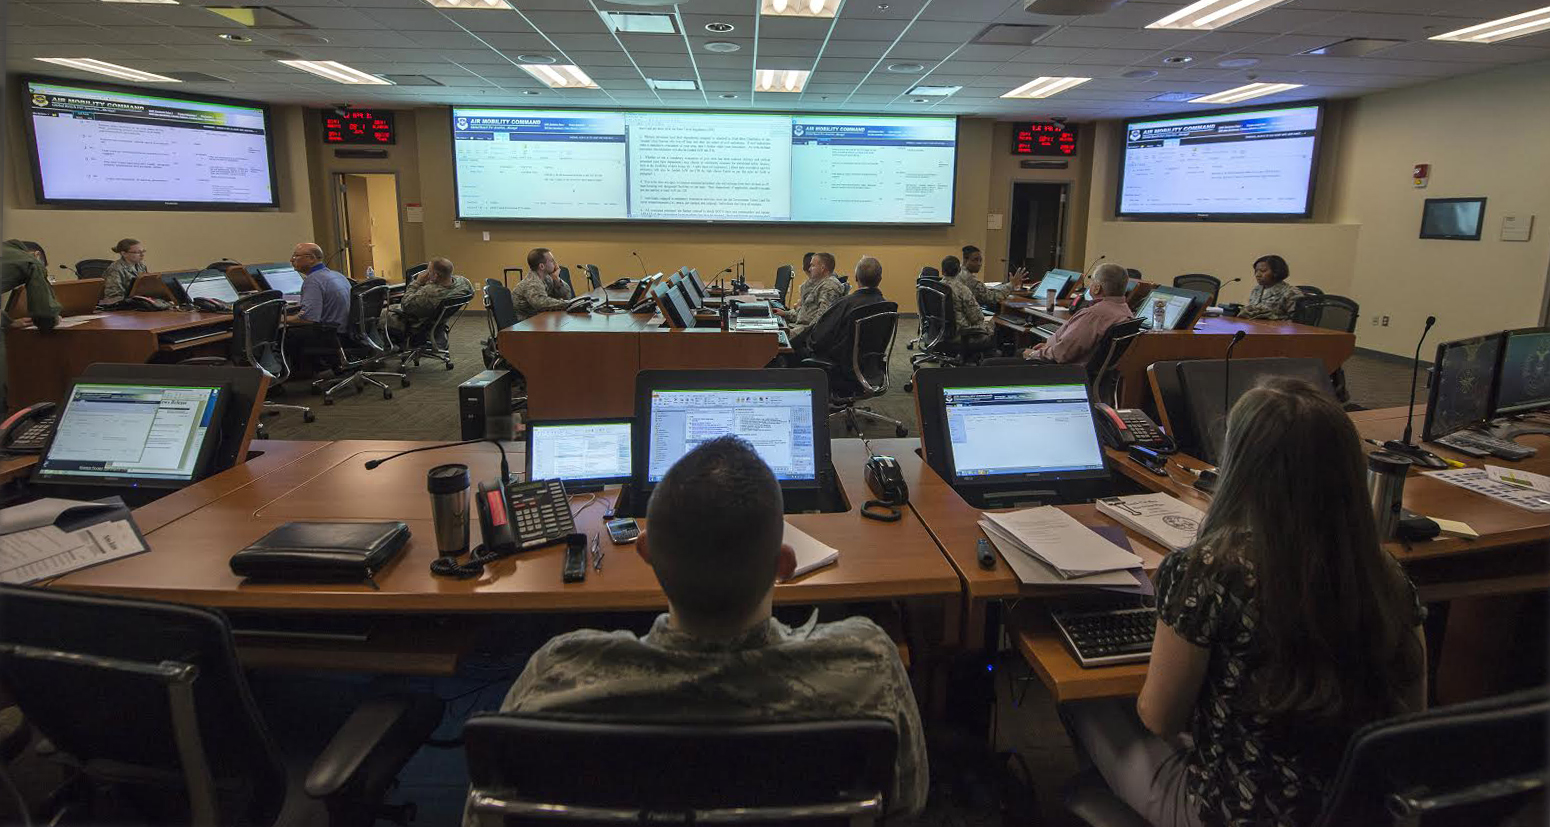 Flip-screen furniture for Emergency Operations Centers are both functional and cost effective